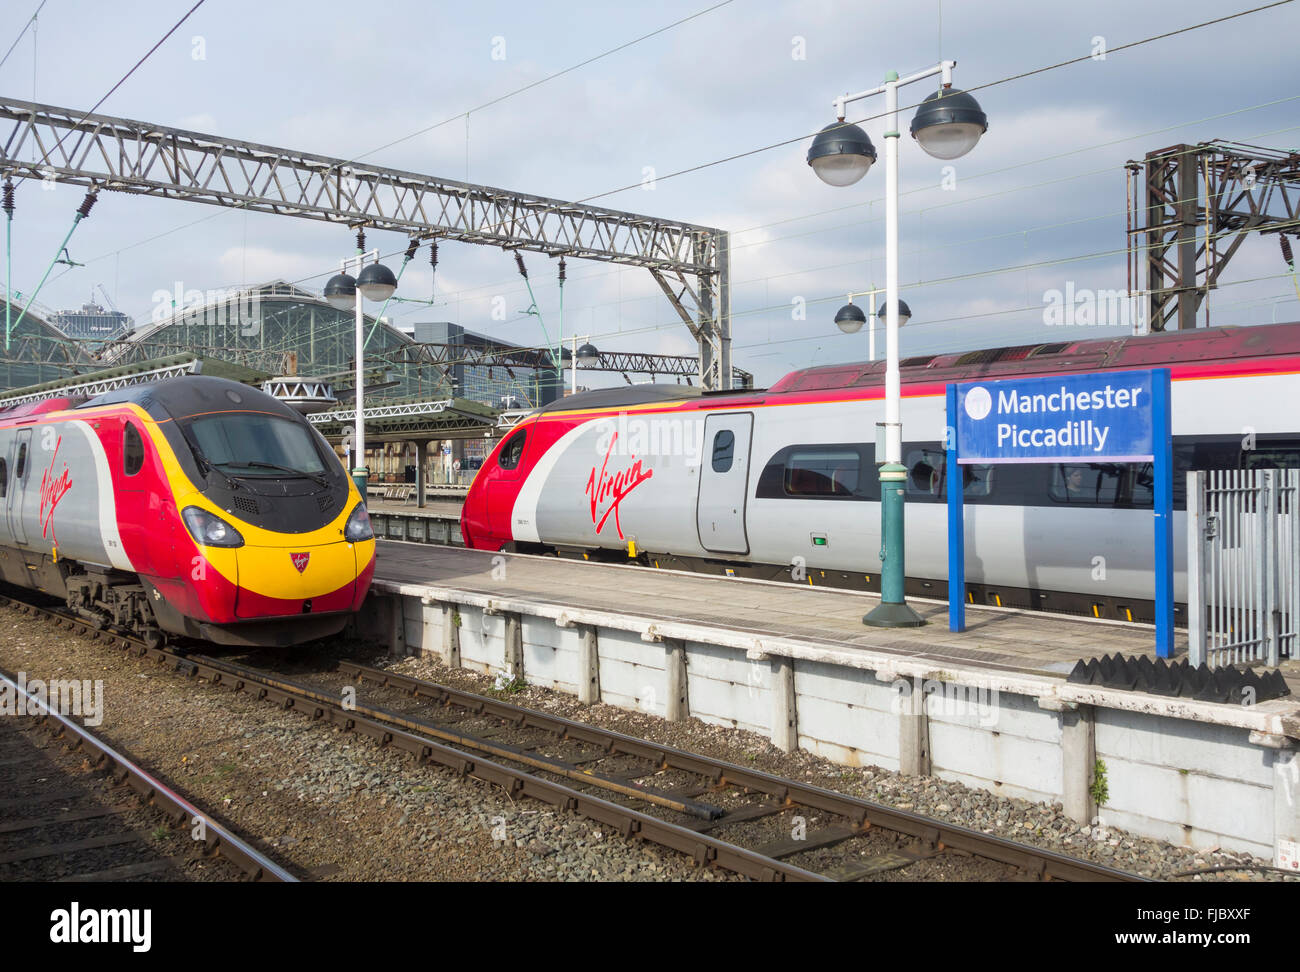 Virgin train at Manchester Piccadilly station, Manchester, England, UK - Stock Image